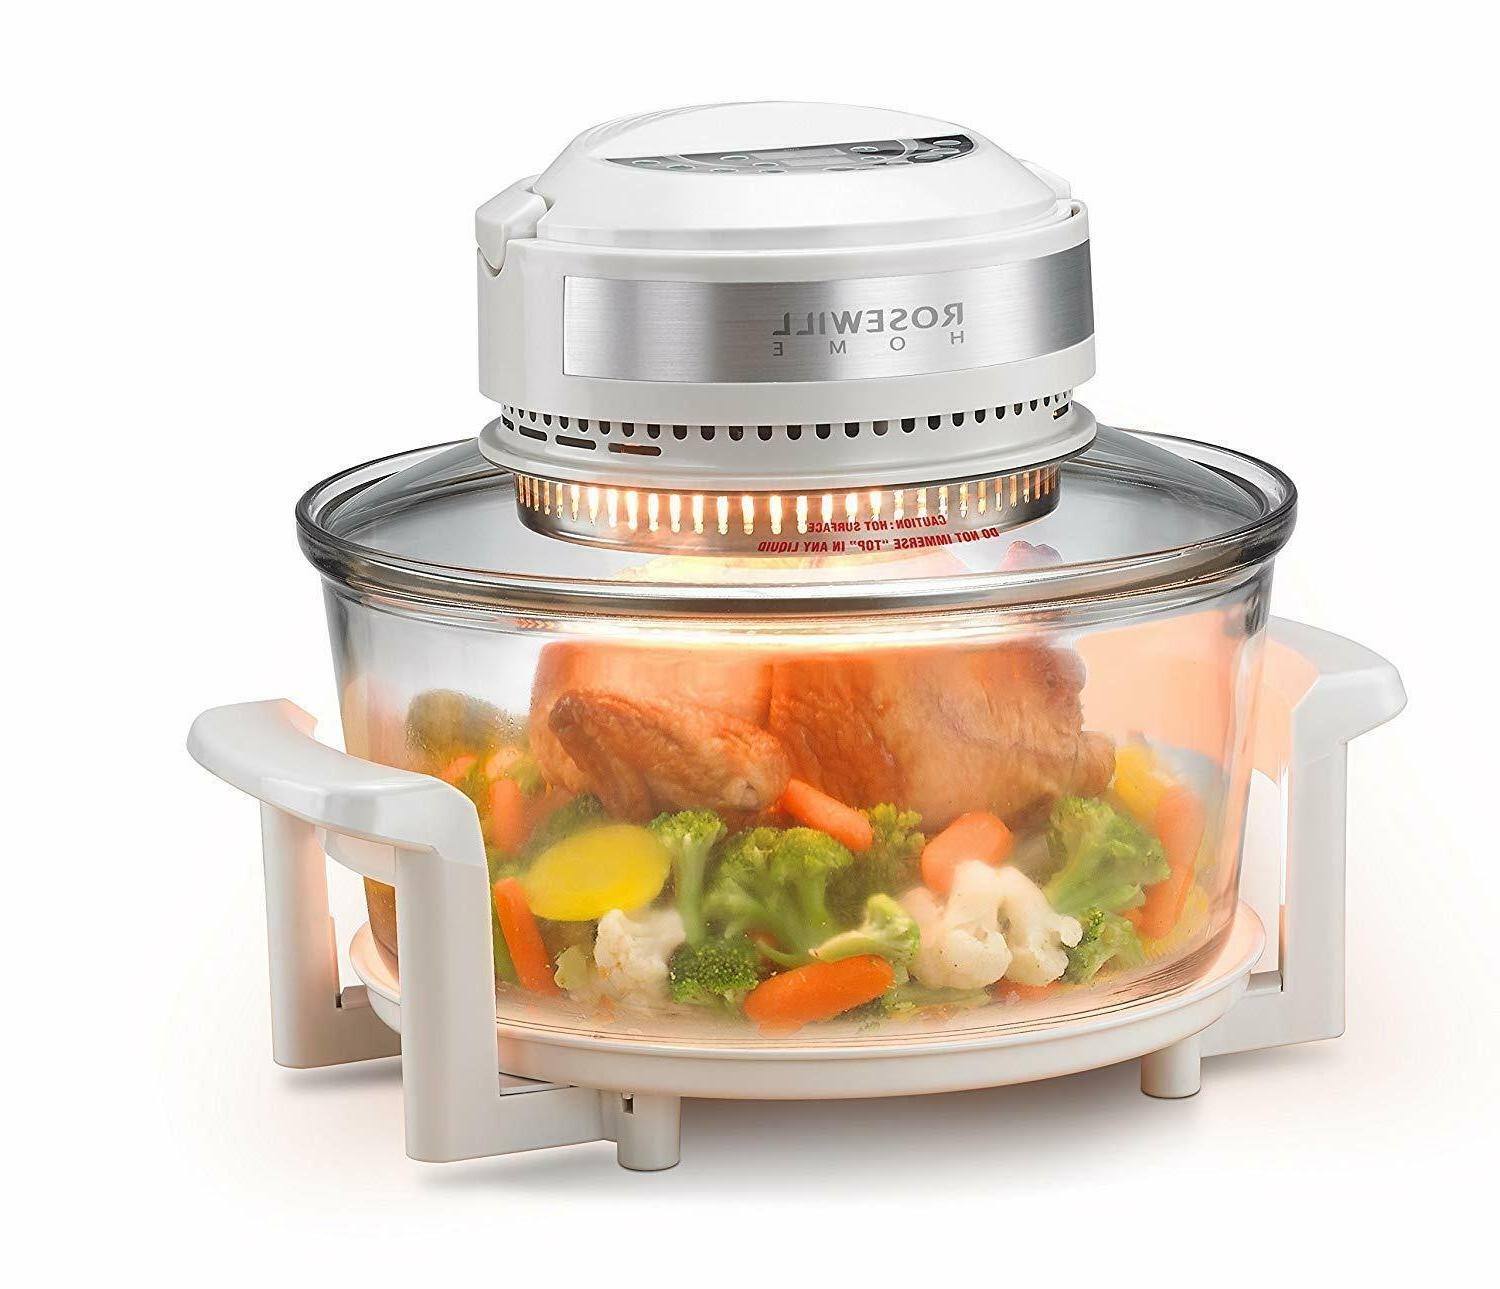 digital infrared halogen convection oven stainless steel